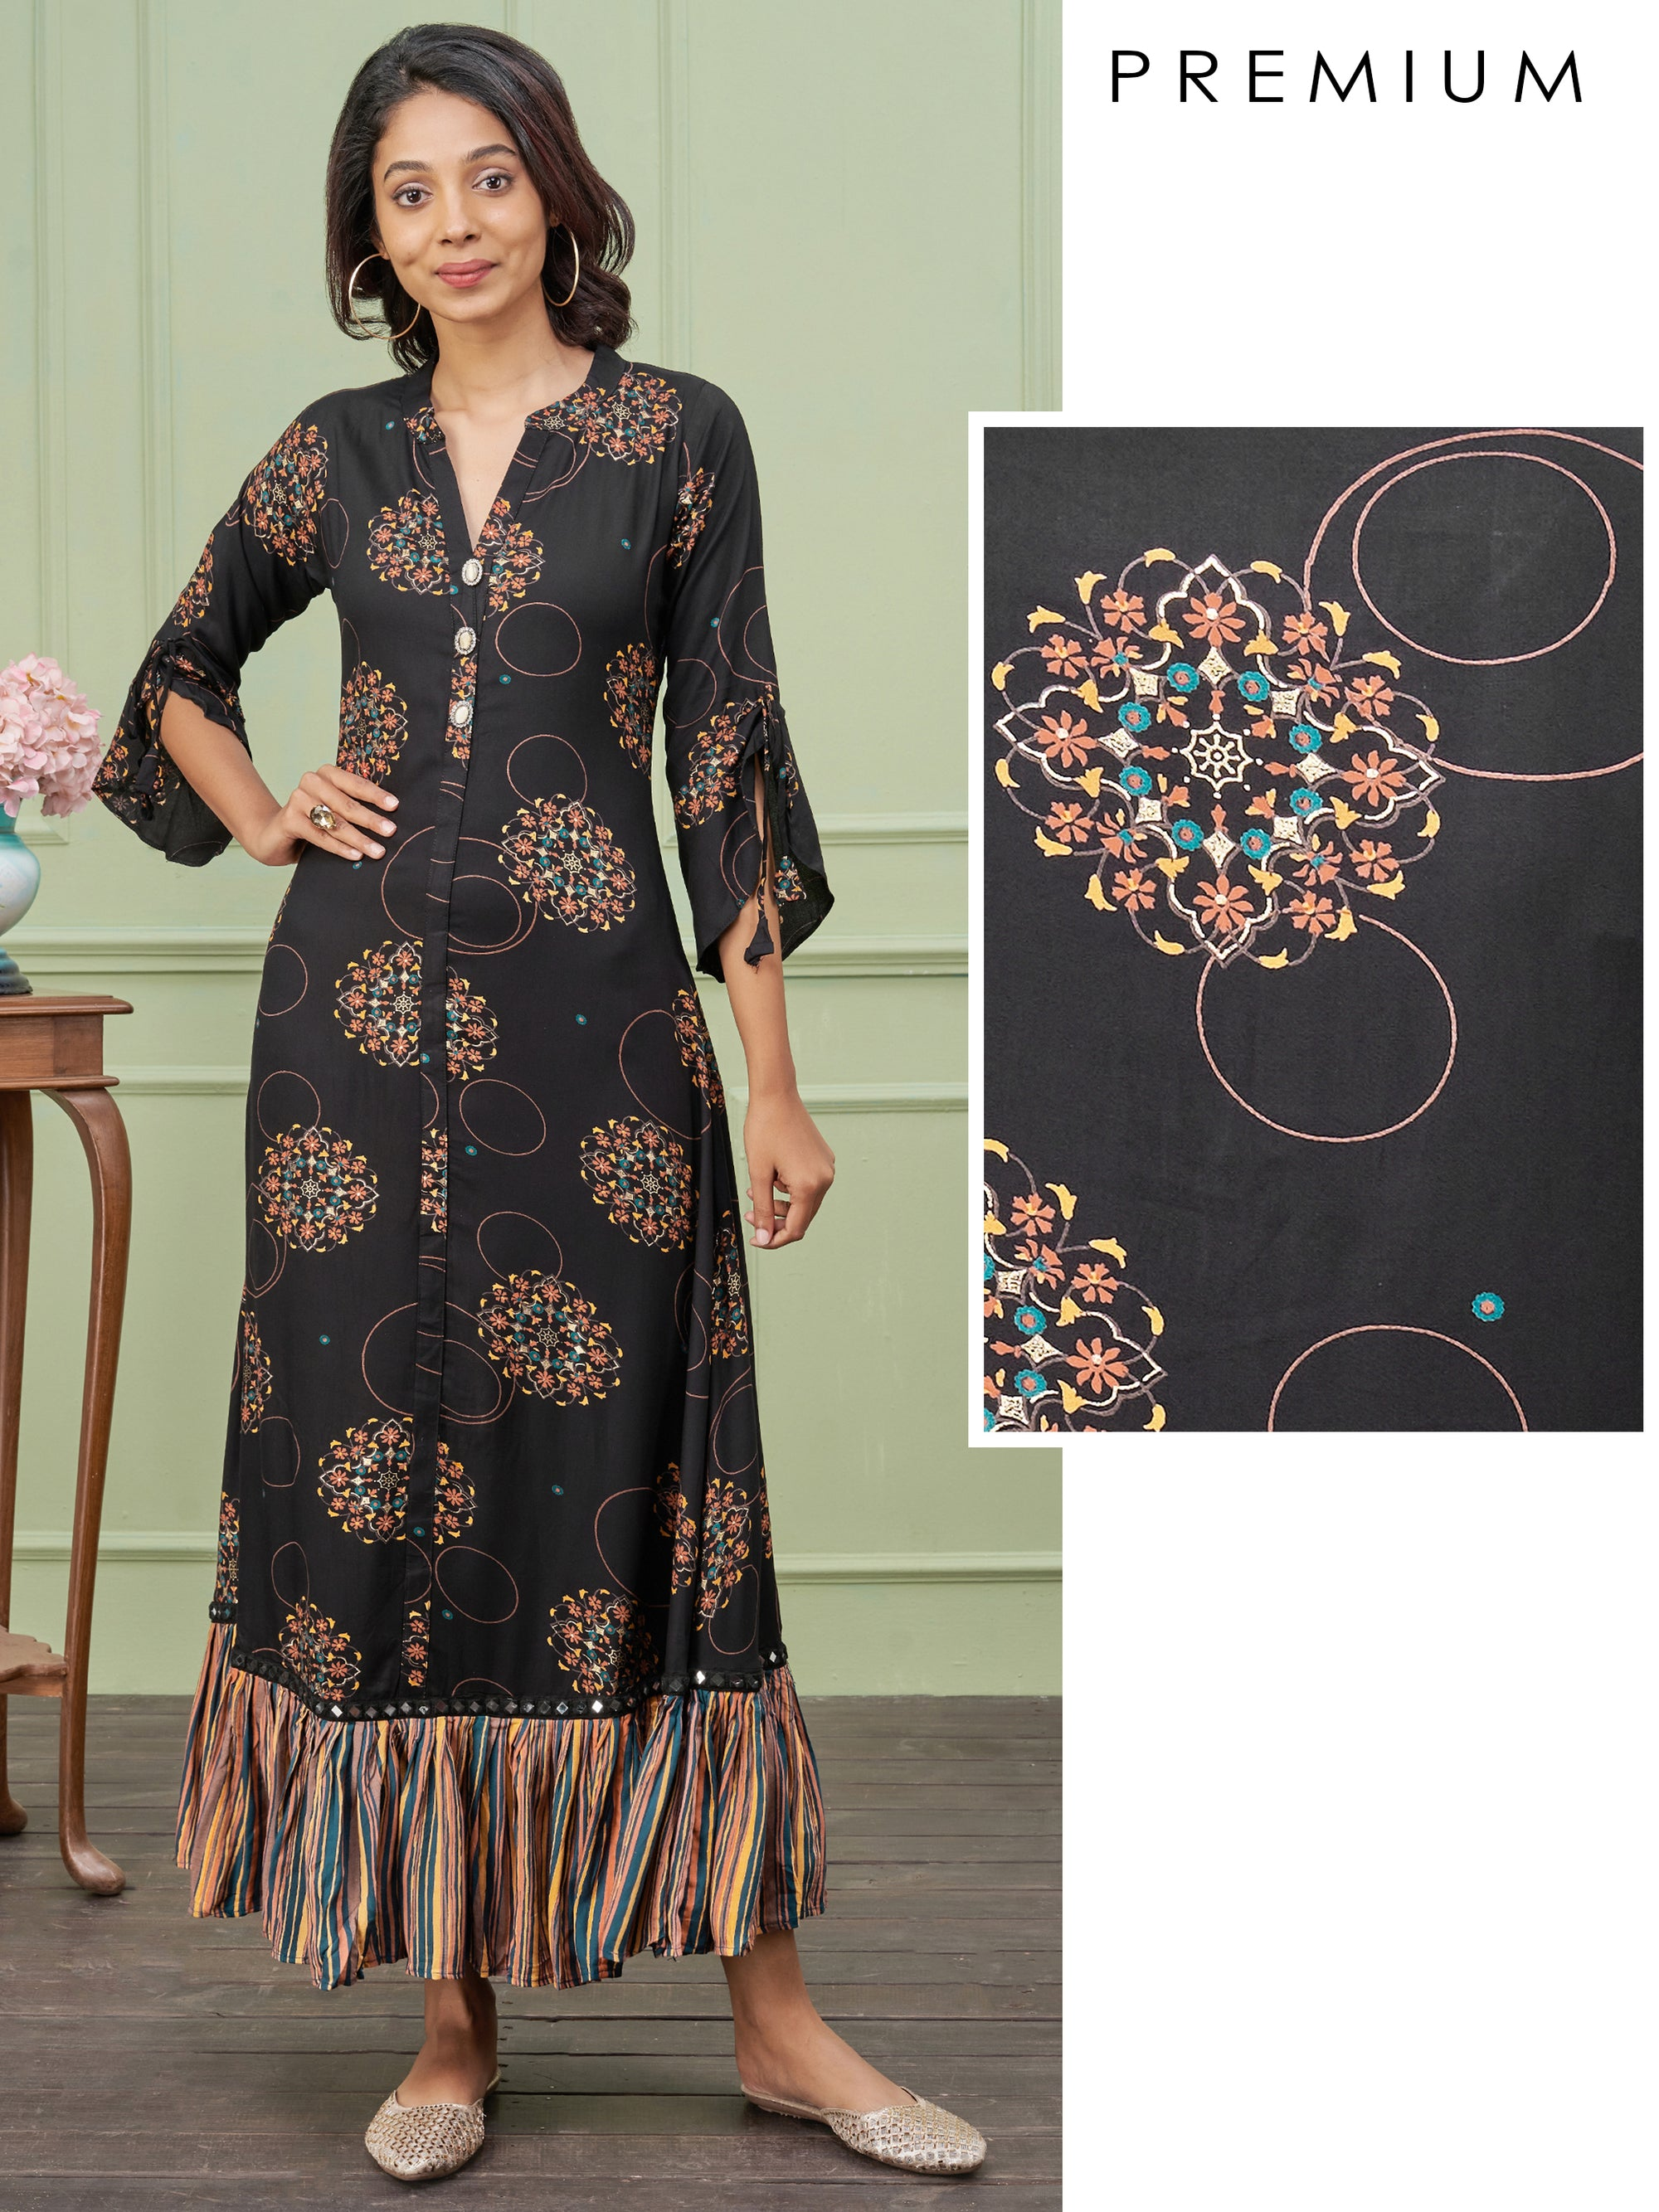 Floral Motif Printed Maxi with Gathered Flare – Black